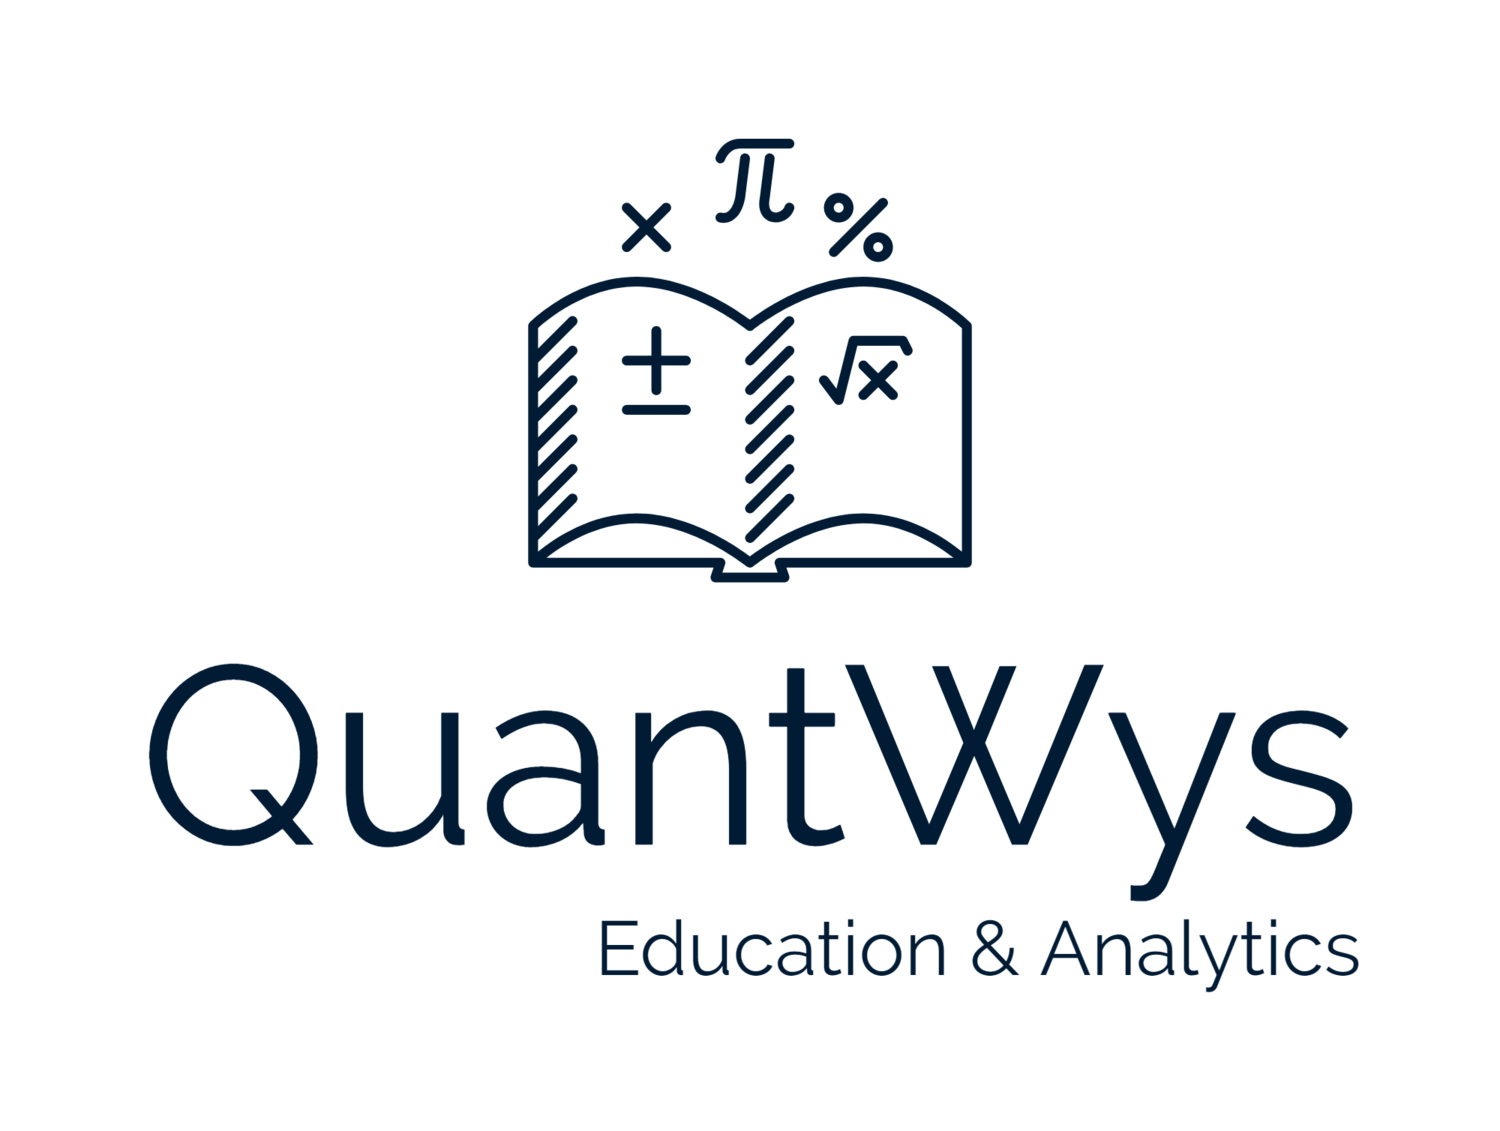 QuantWys Education & Analytics